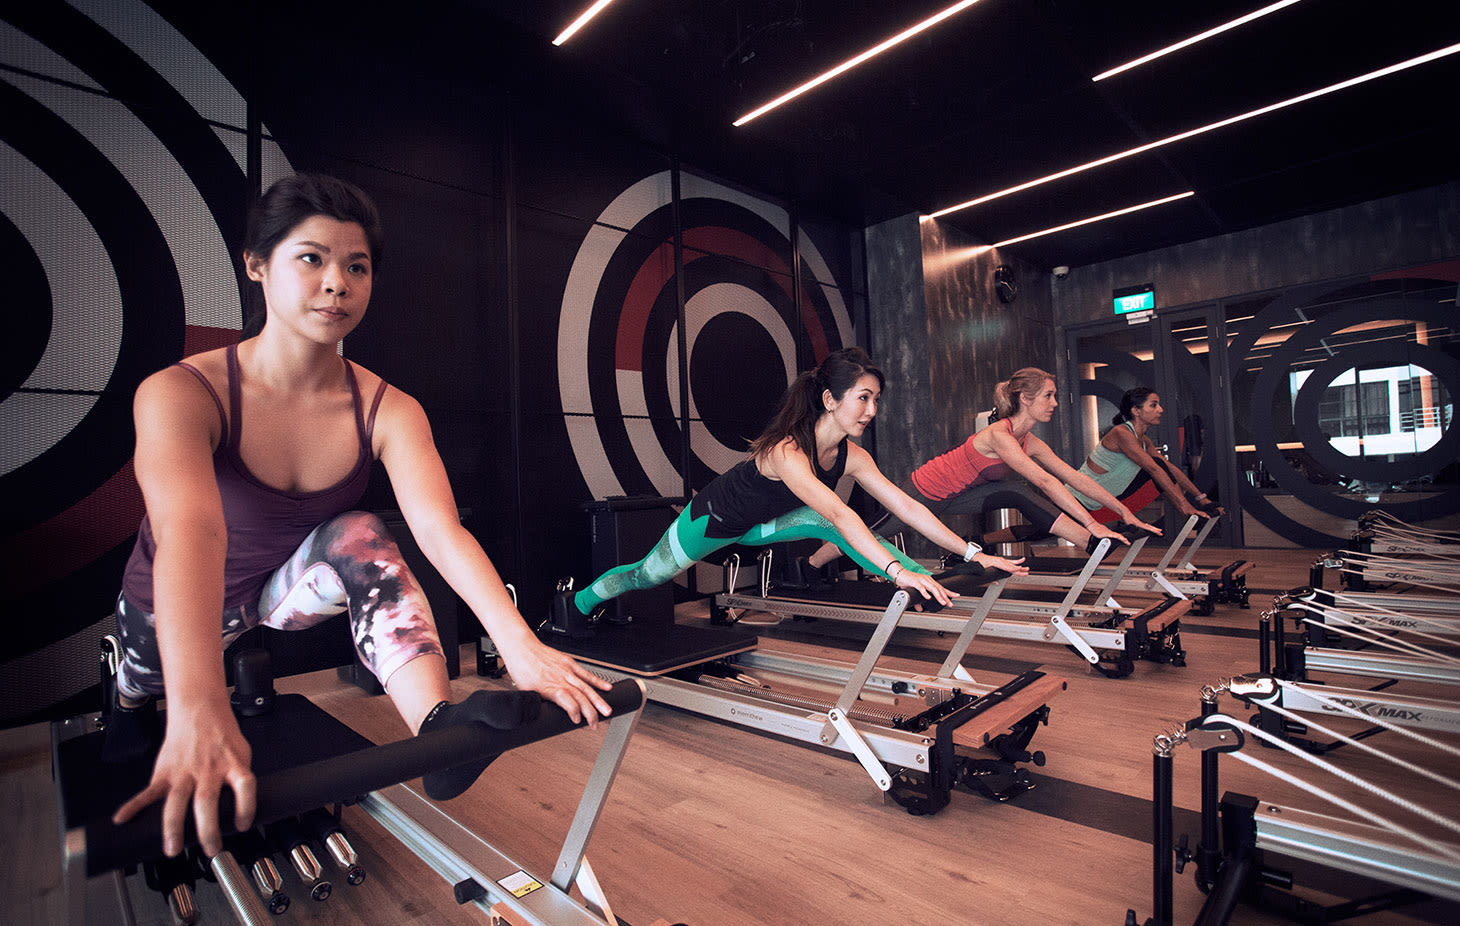 Women practising reformer pilates at a Virgin Active Singapore club